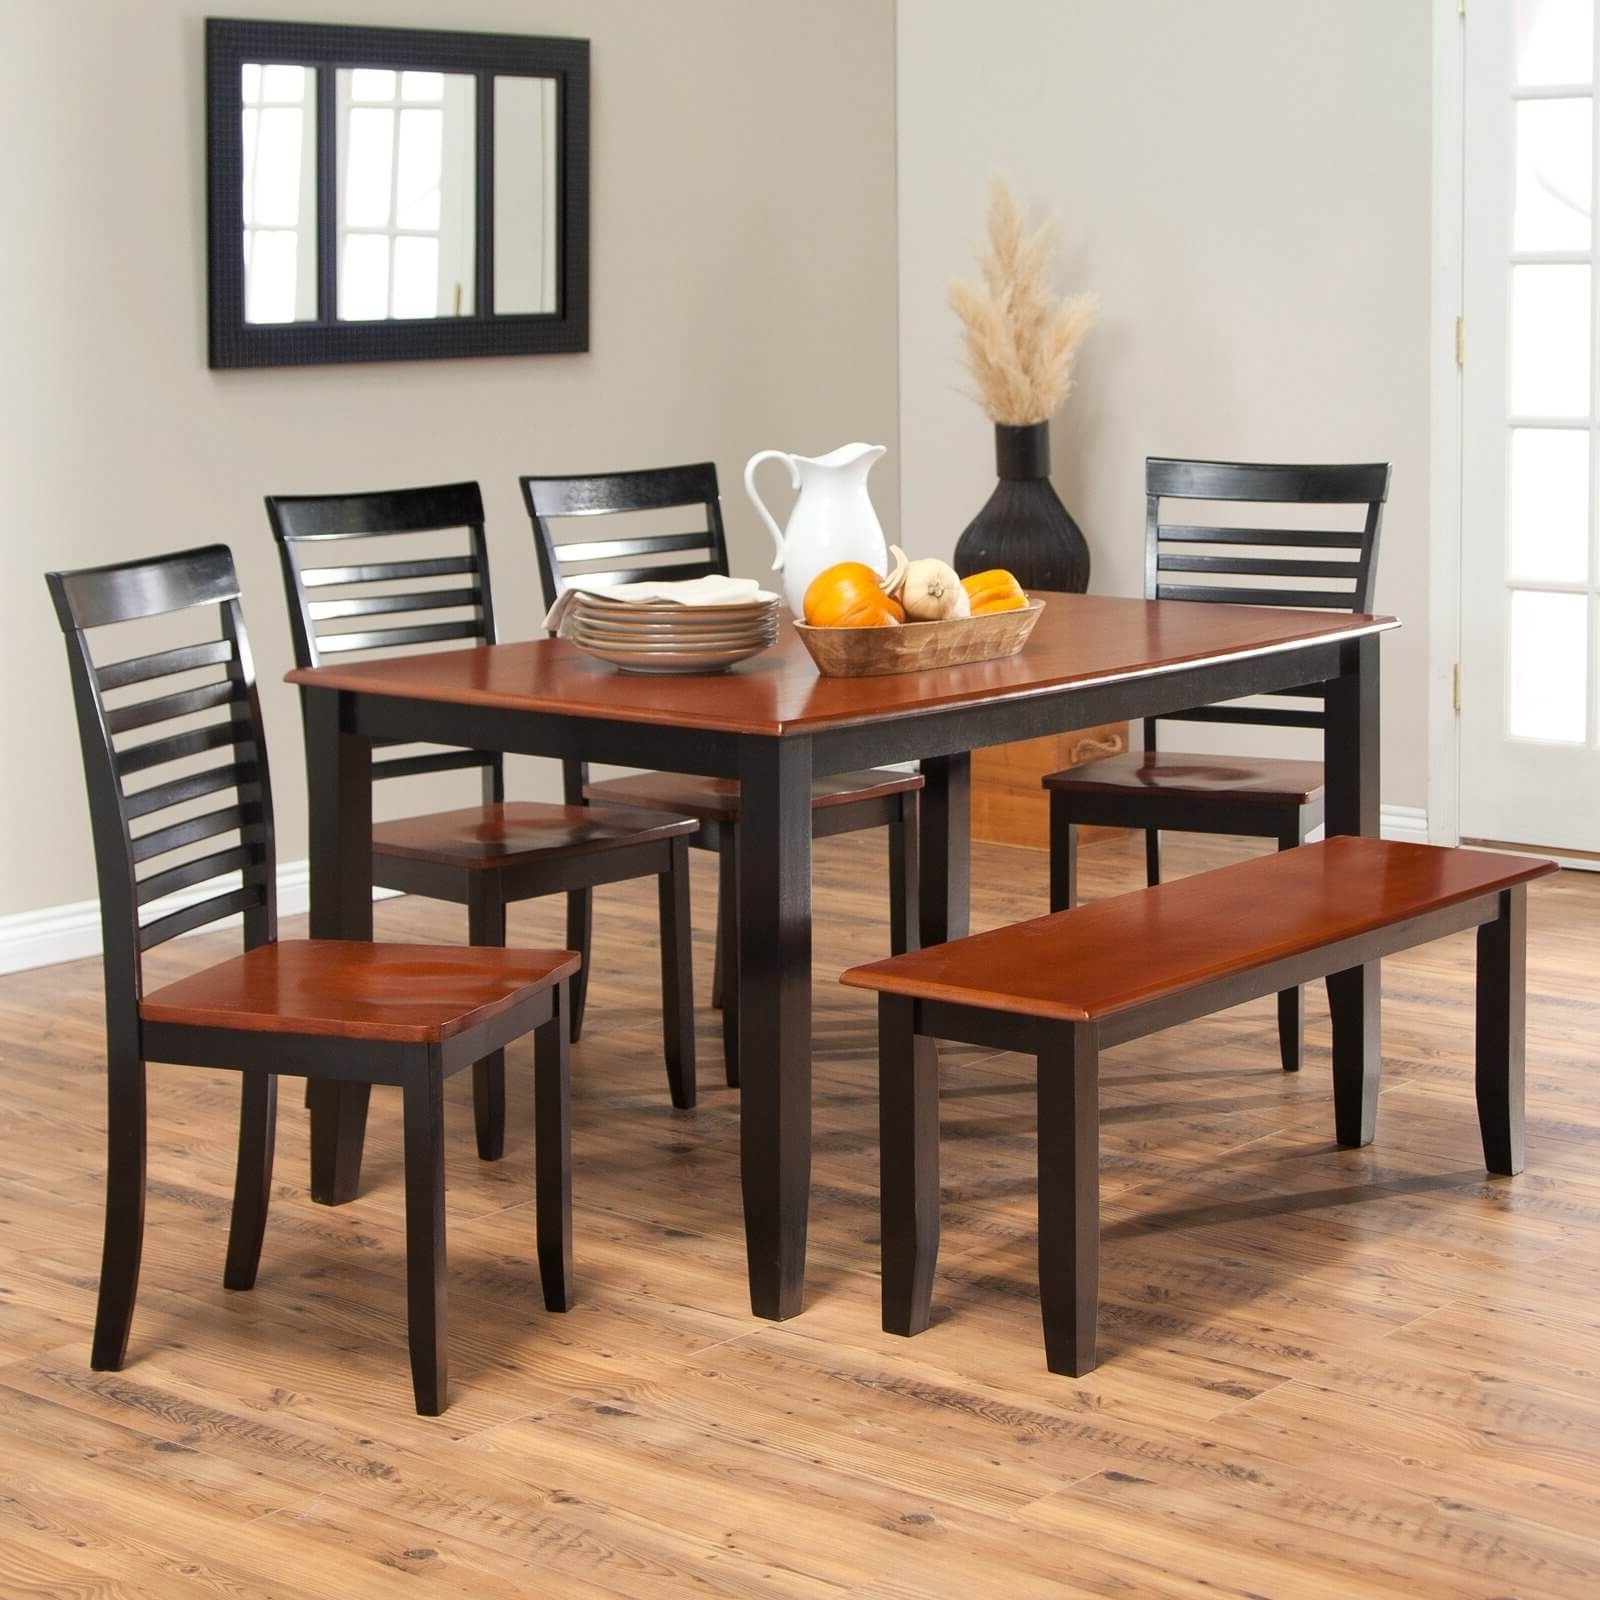 26 Dining Room Sets (Big And Small) With Bench Seating (2018) With Current Dark Wood Dining Tables 6 Chairs (Gallery 7 of 25)